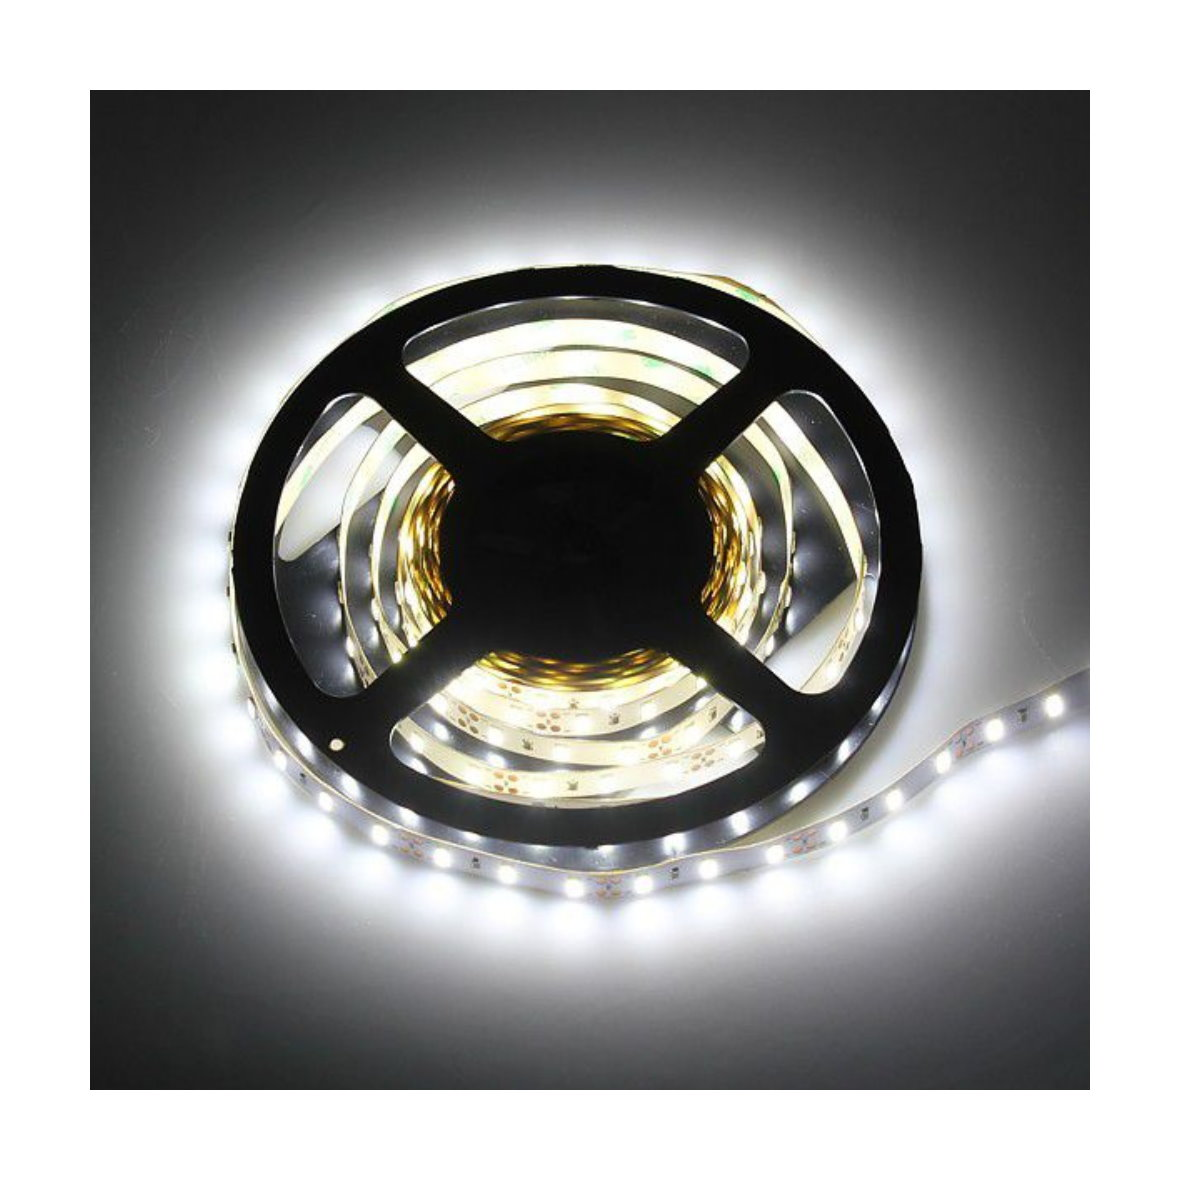 5m 300 led smd lichtband licht strip leiste band streifen 3528 5630 rgb dimmbar ebay. Black Bedroom Furniture Sets. Home Design Ideas